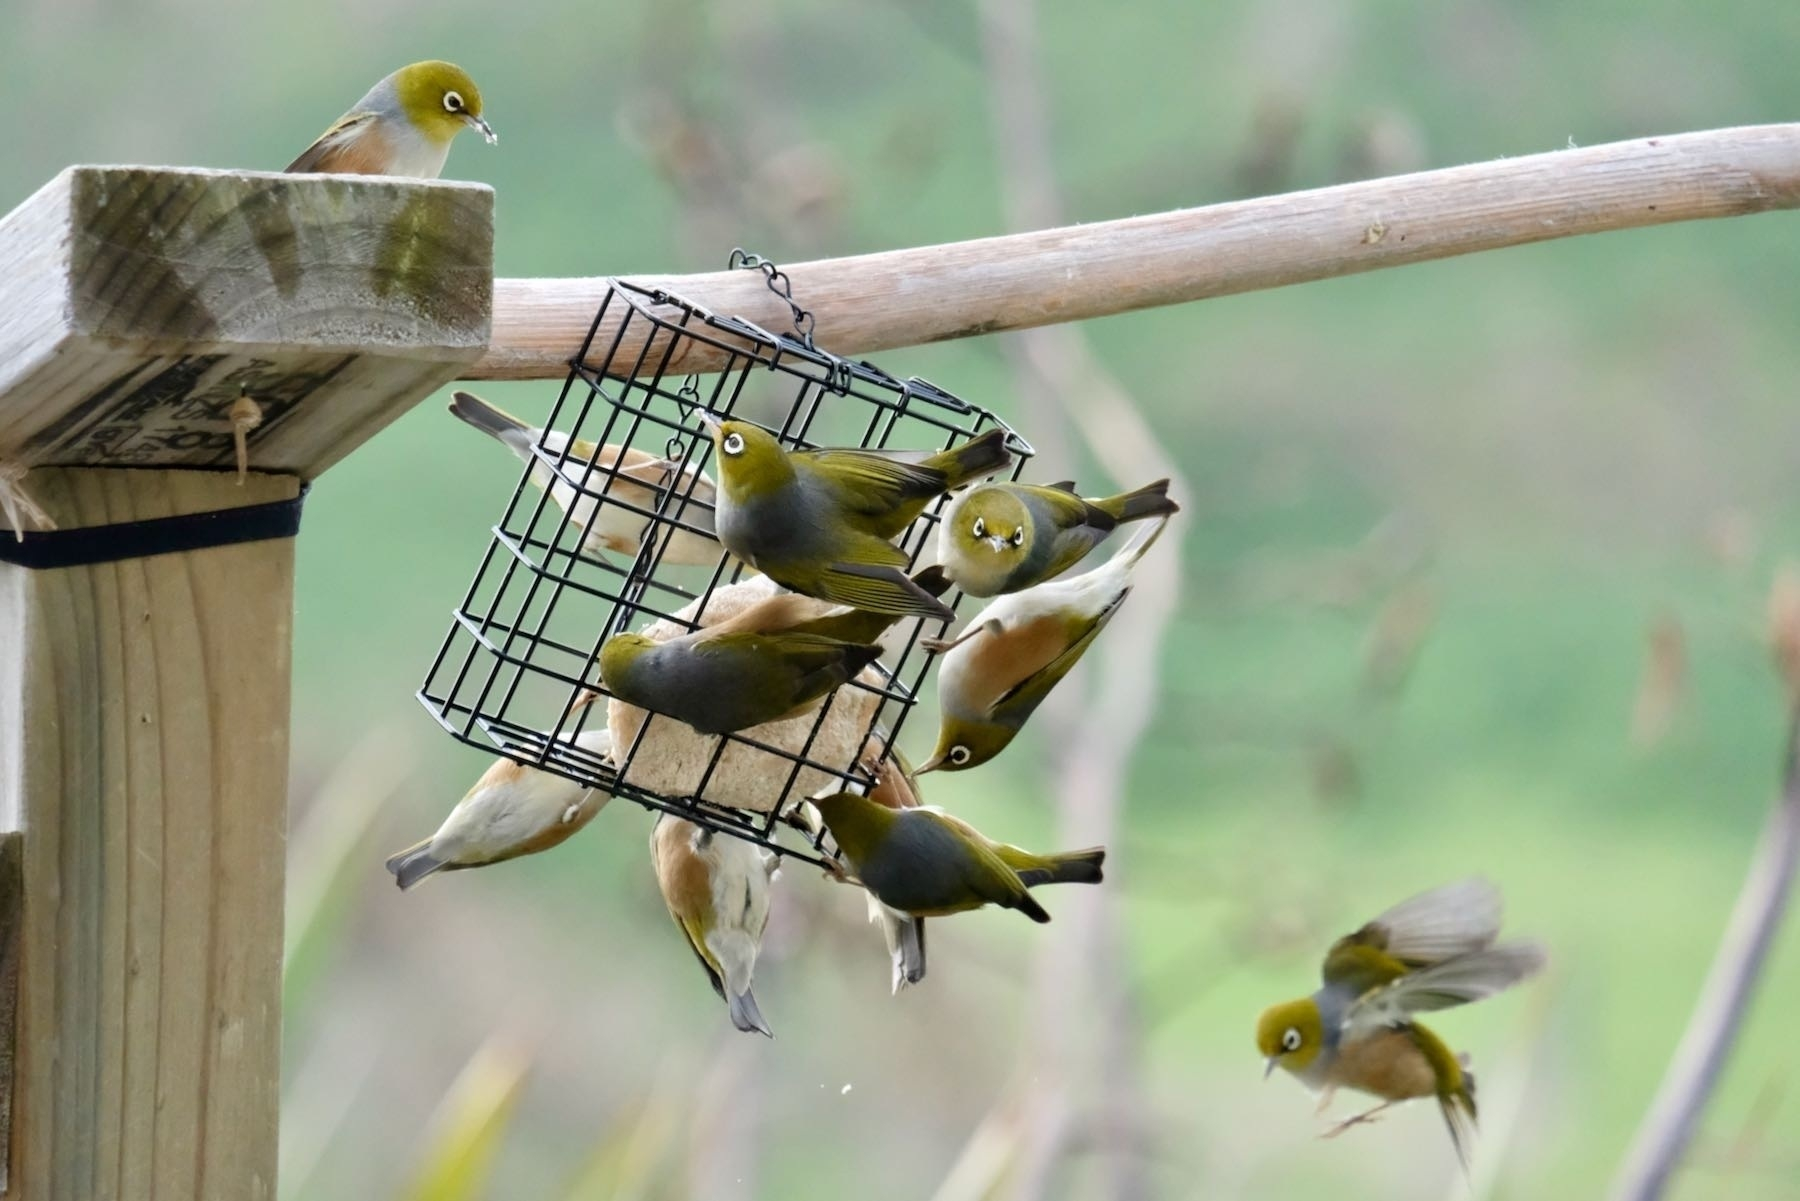 A cluster of small birds around a feeder.